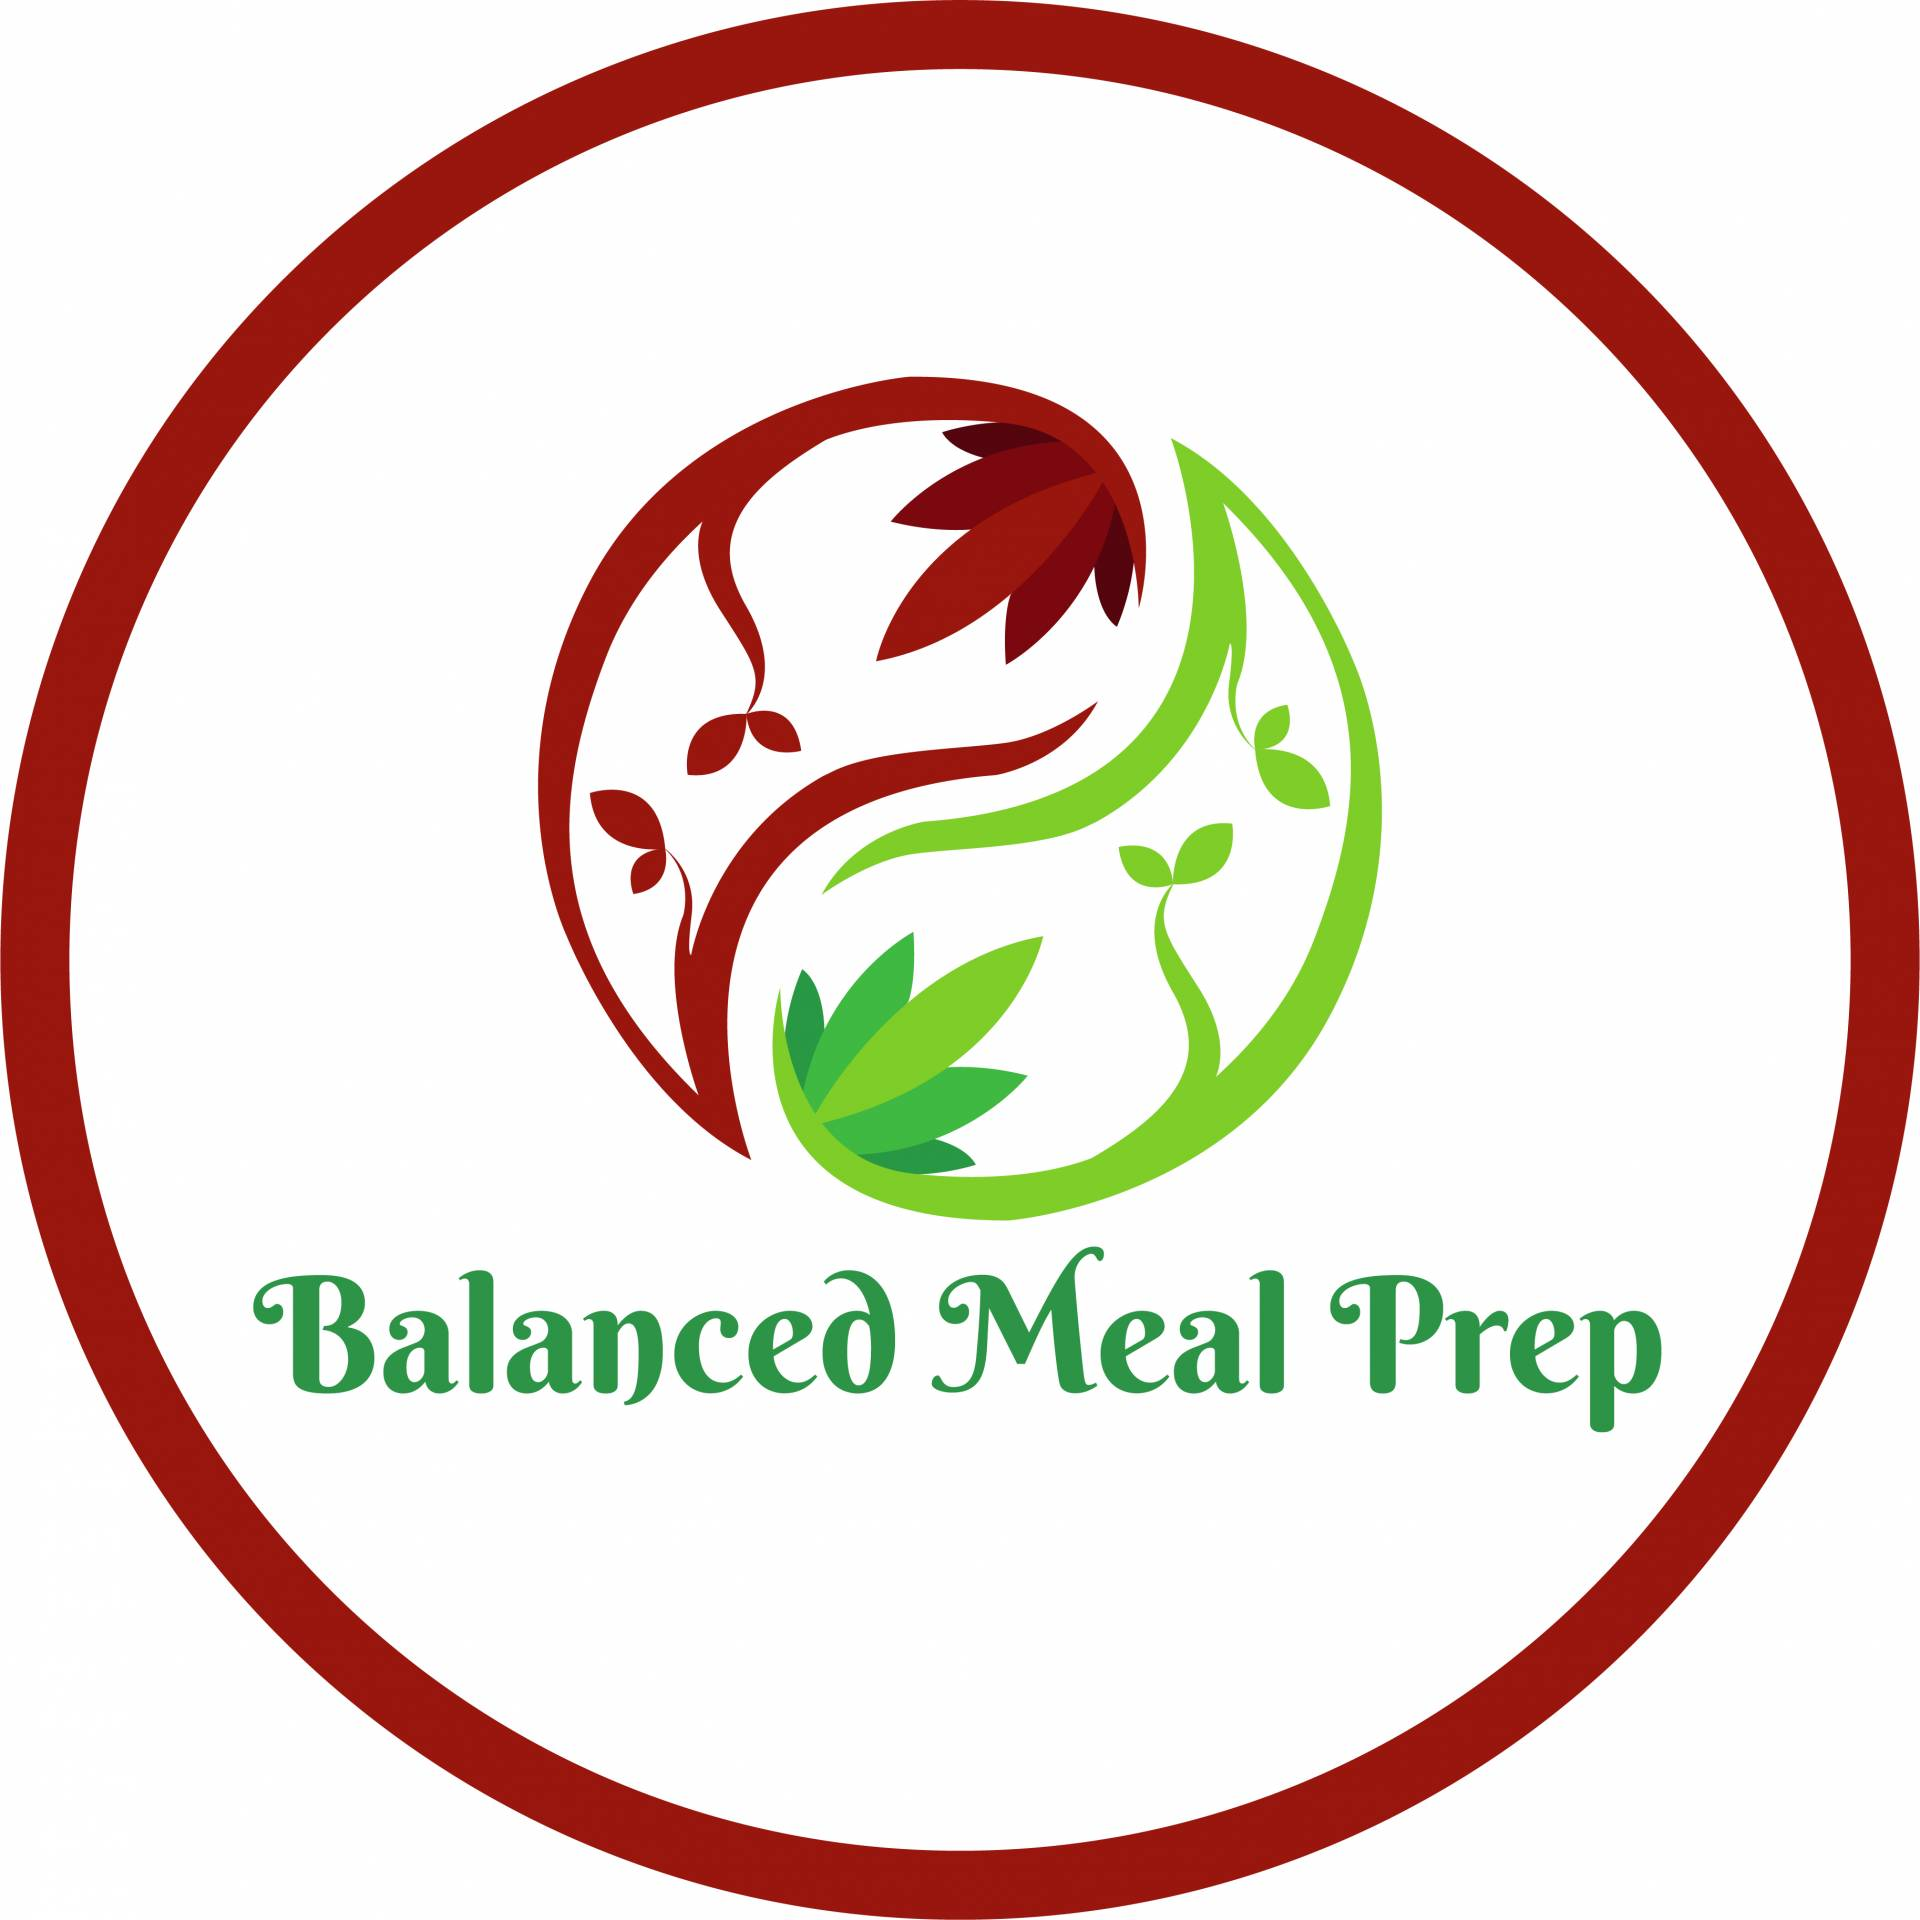 Balanced Meal Prep logo